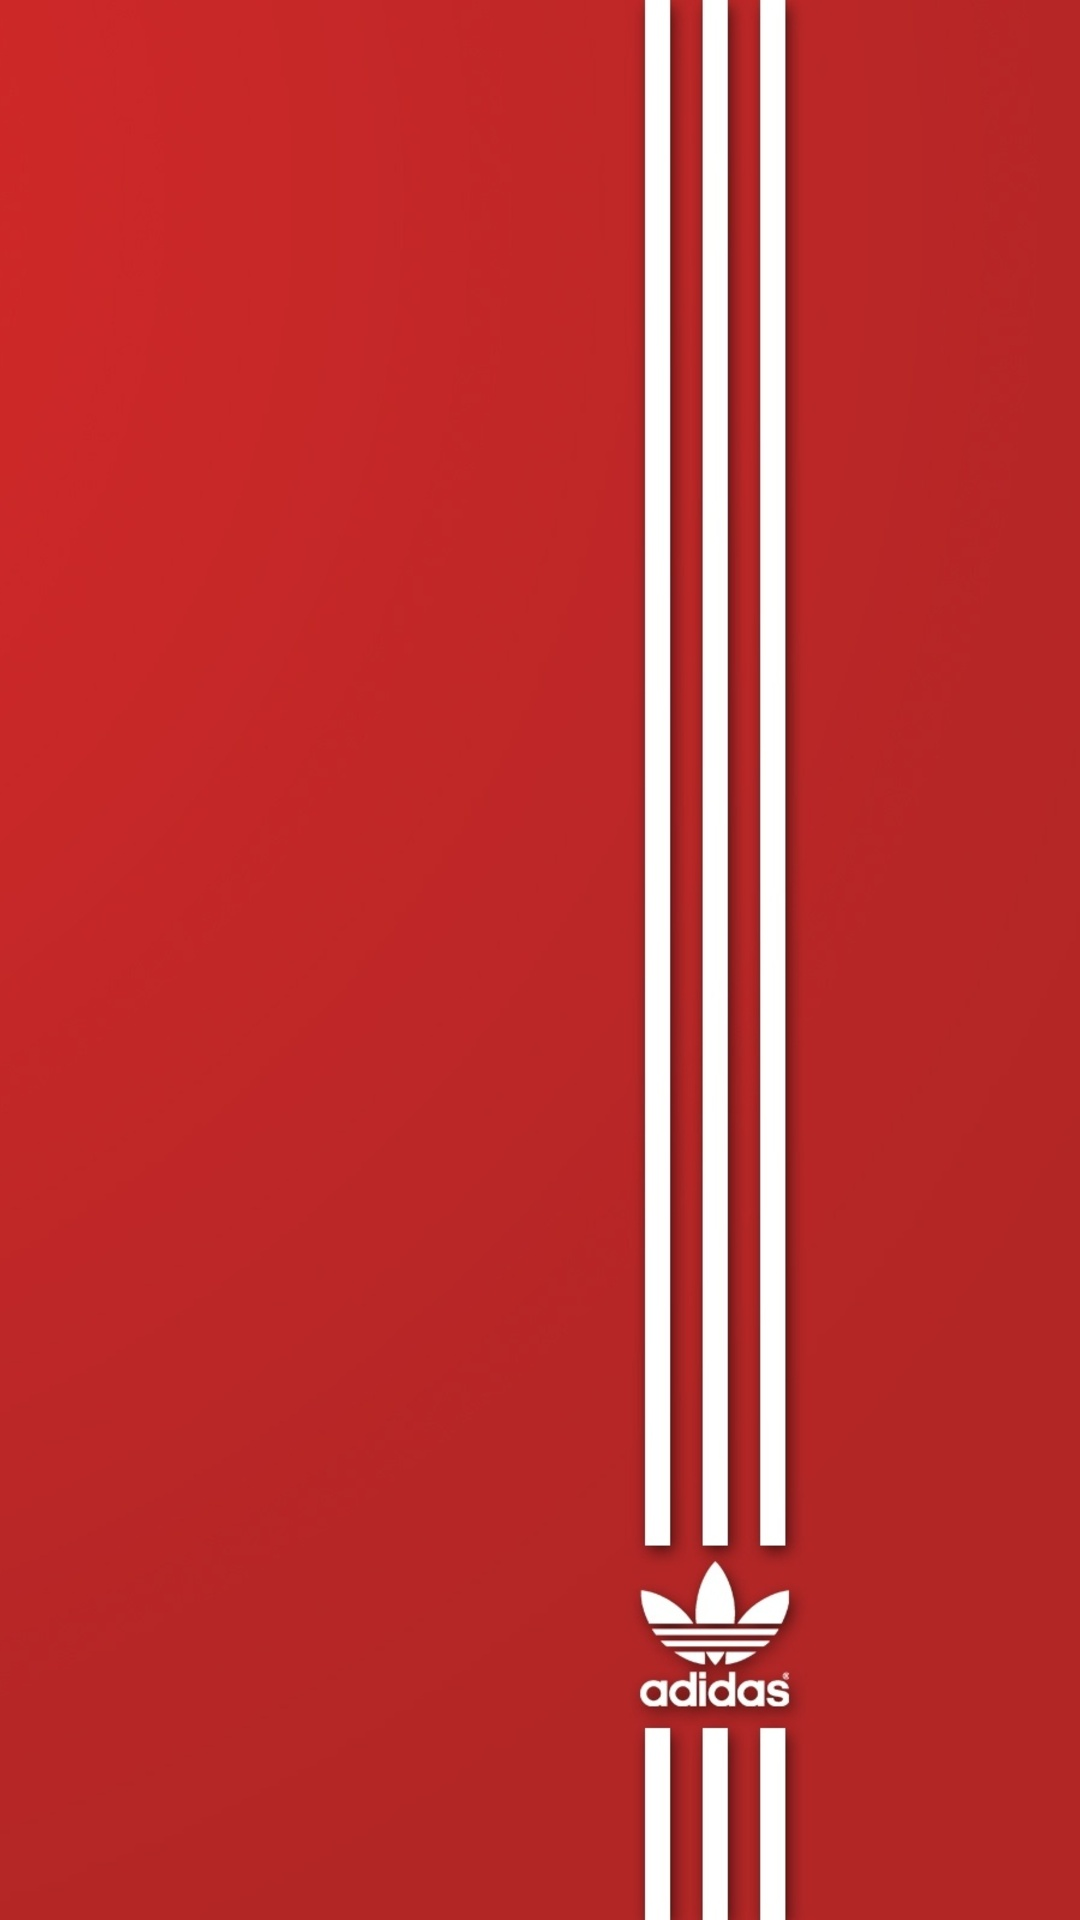 reputable site b1dad fc6d3 Adidas Background (Iphone 7,6s,6 Plus, Pixel xl ,One Plus 3,3t,5)